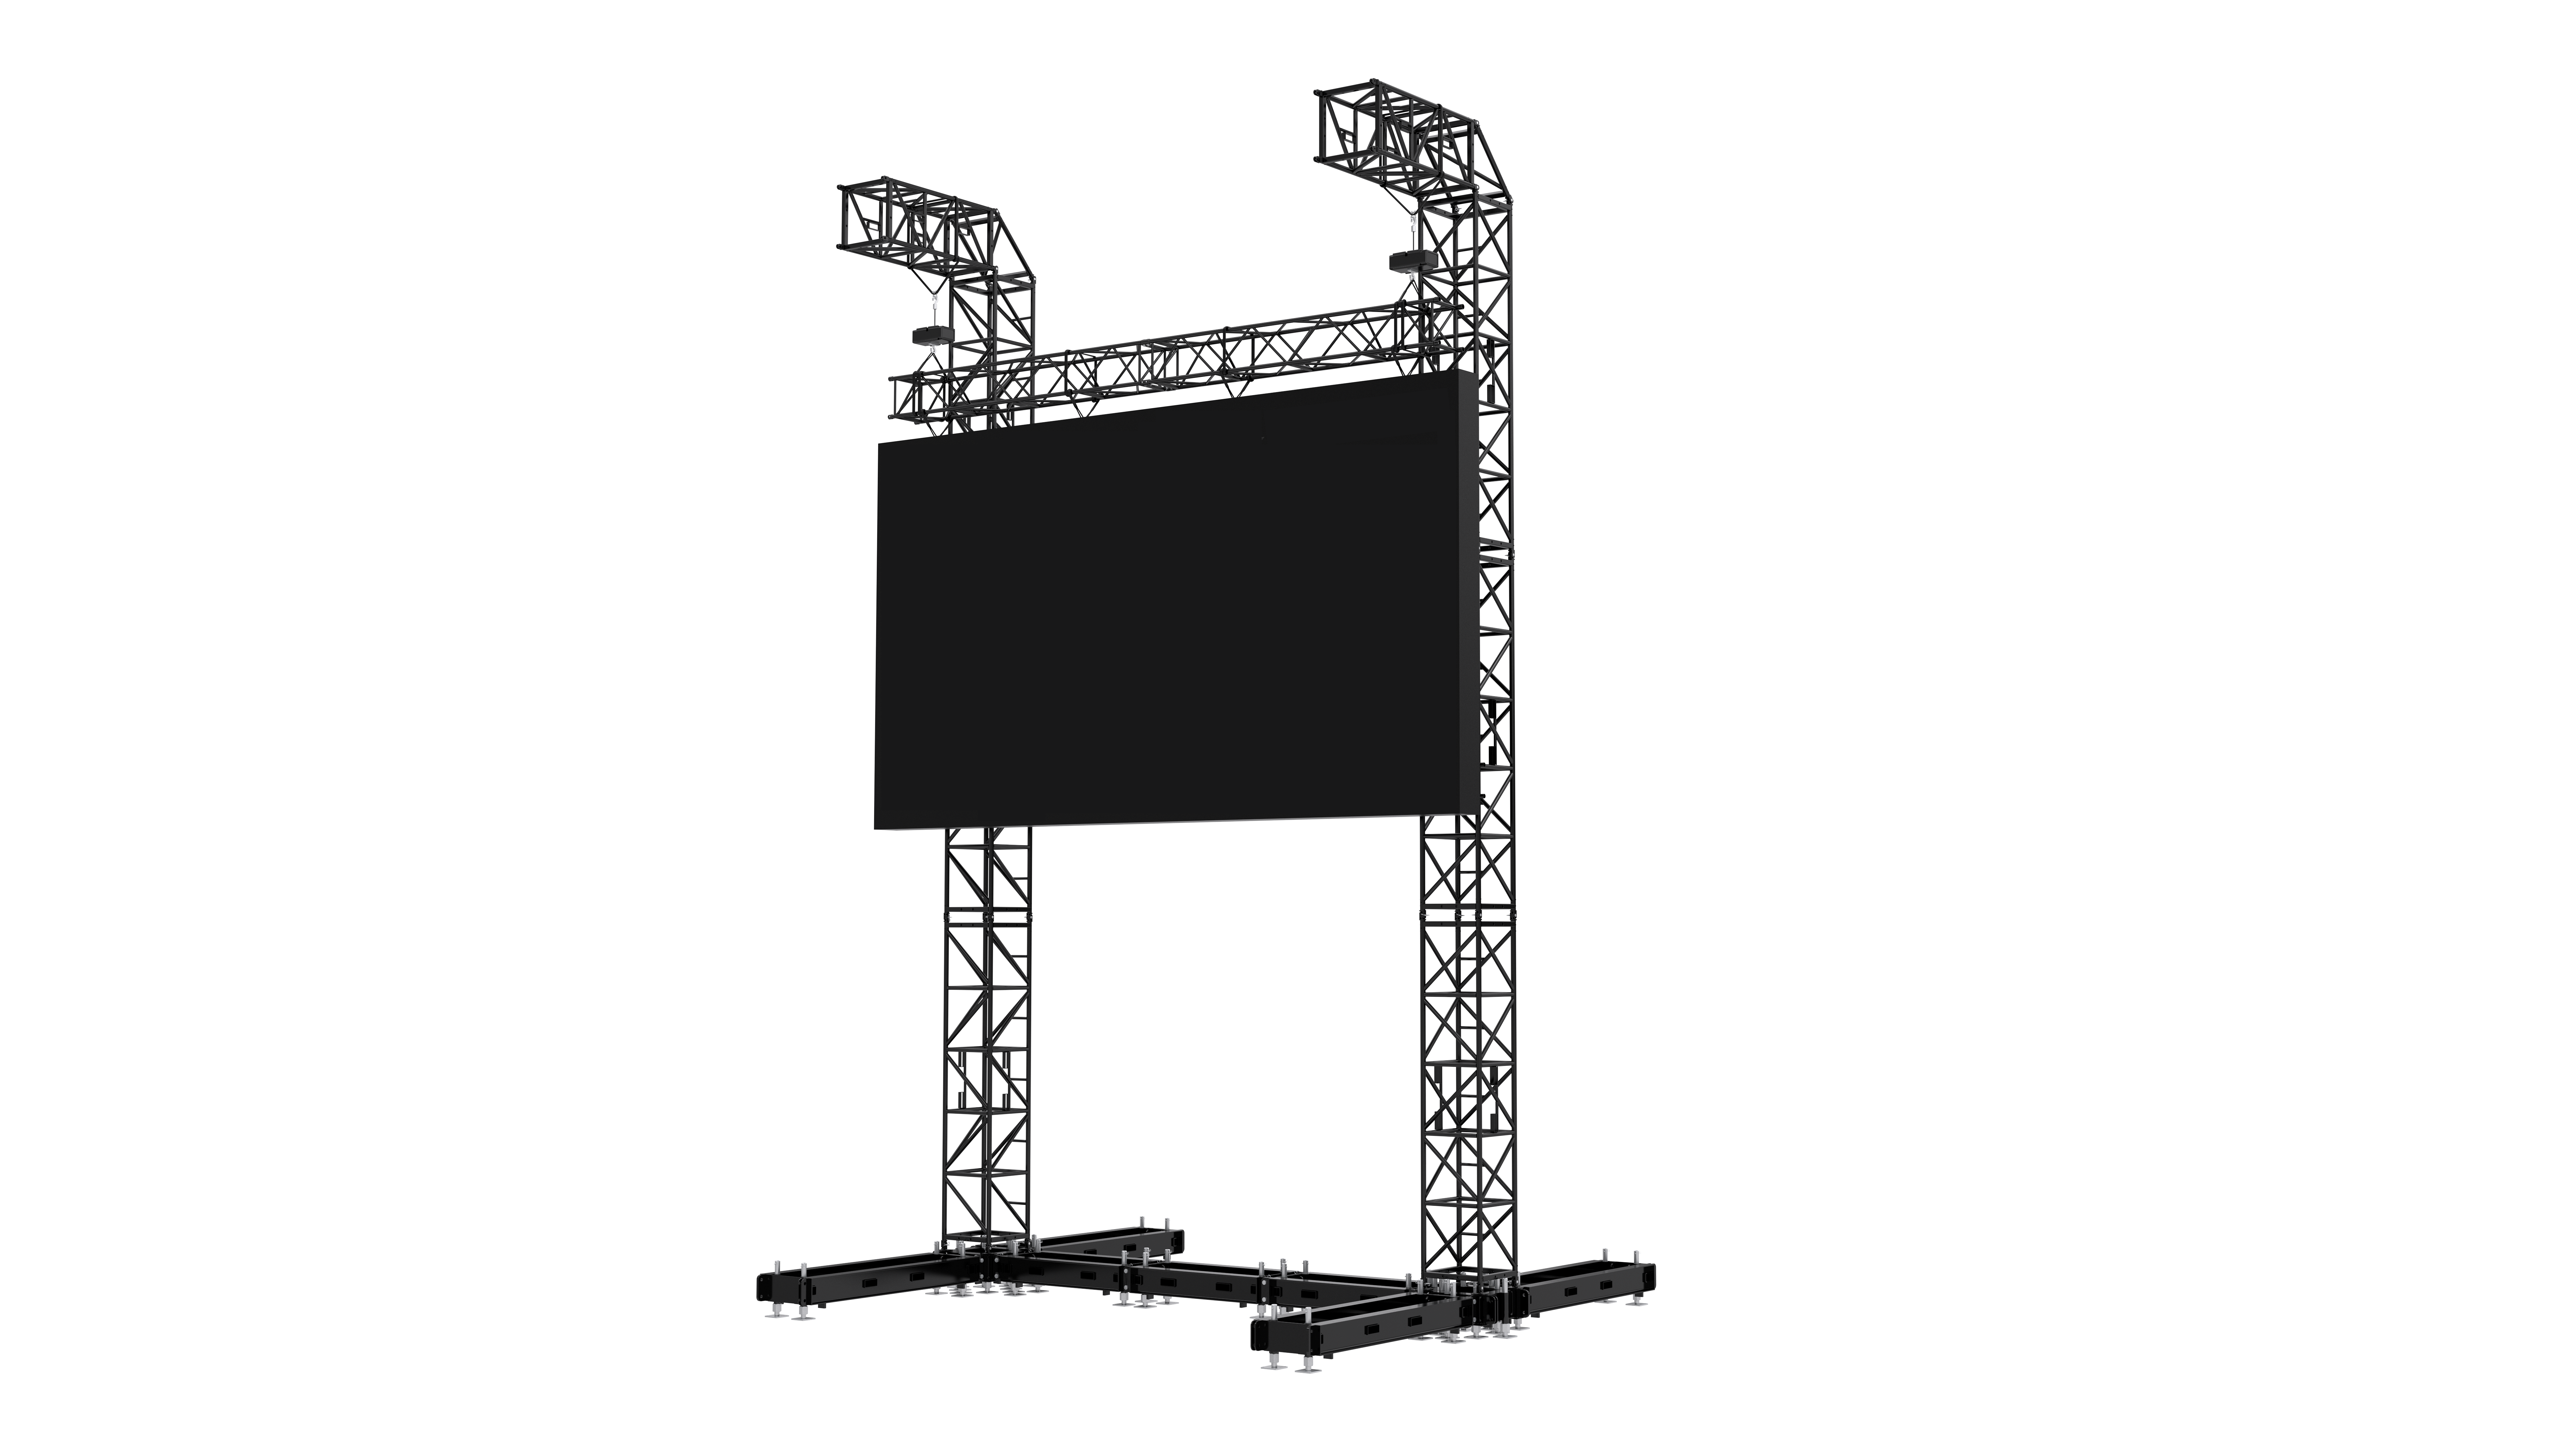 Support for the largest and heaviest LED screens